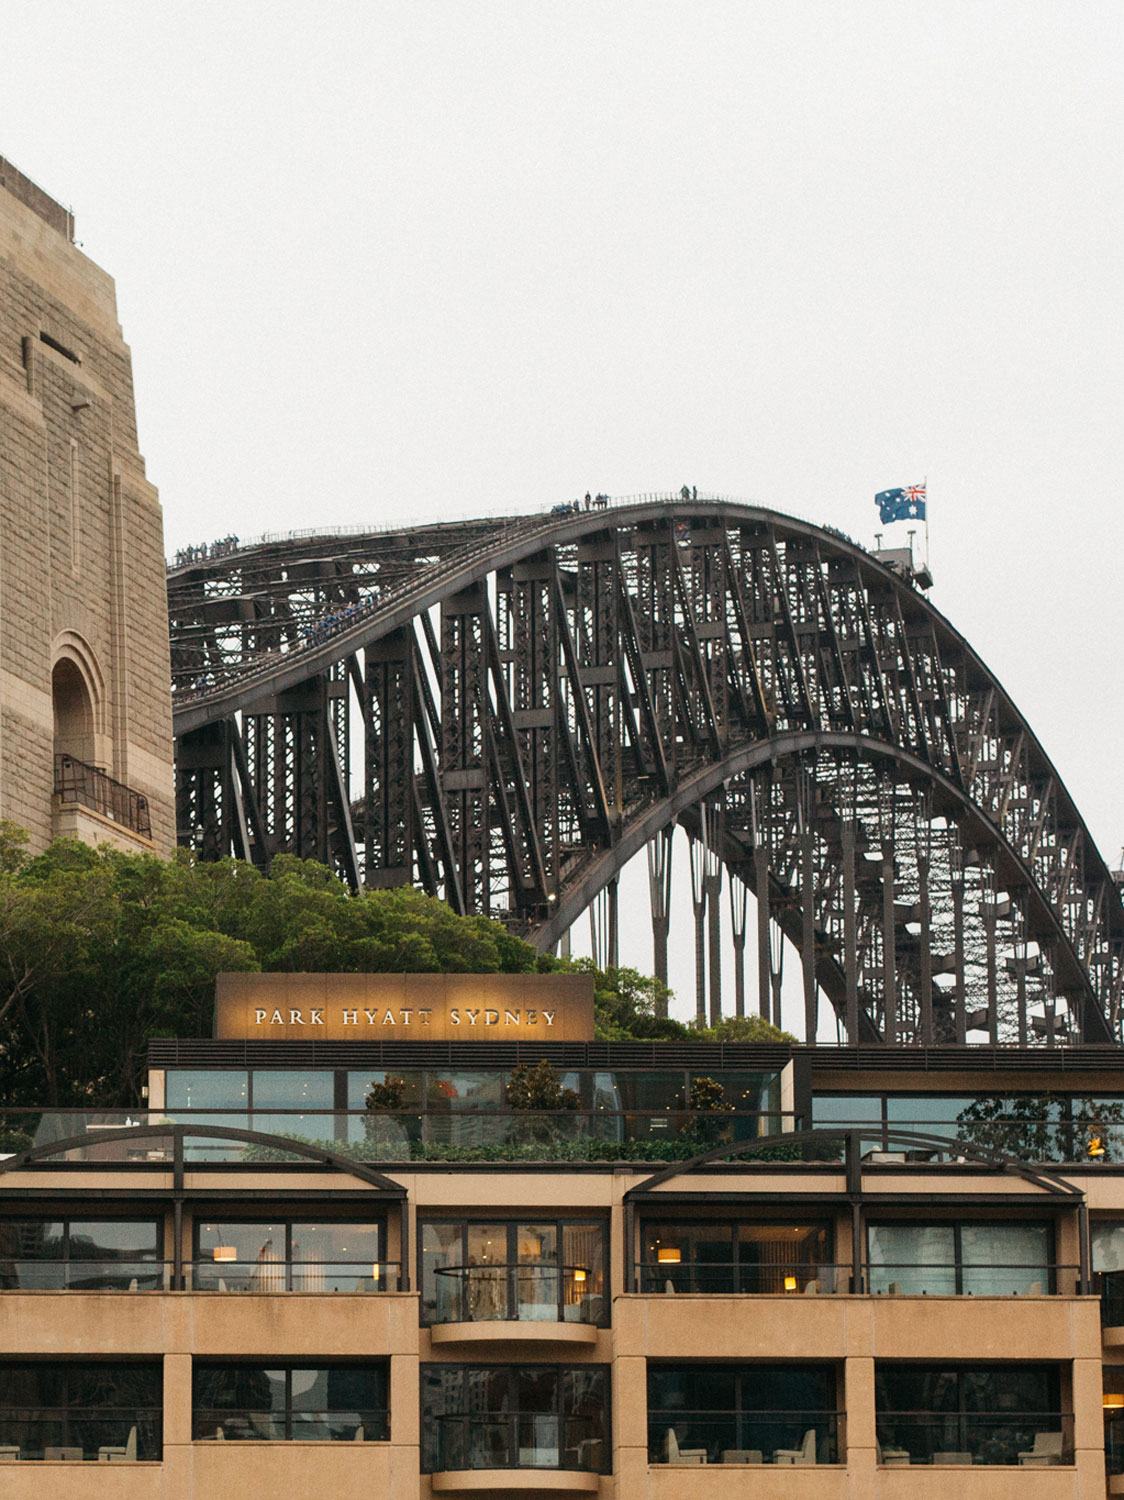 The_Ink_Collective_Creative_Content_Agency_Paris_Editorial_Luxury_Travel_Guide_Review_Sydney_Australia_15.JPG